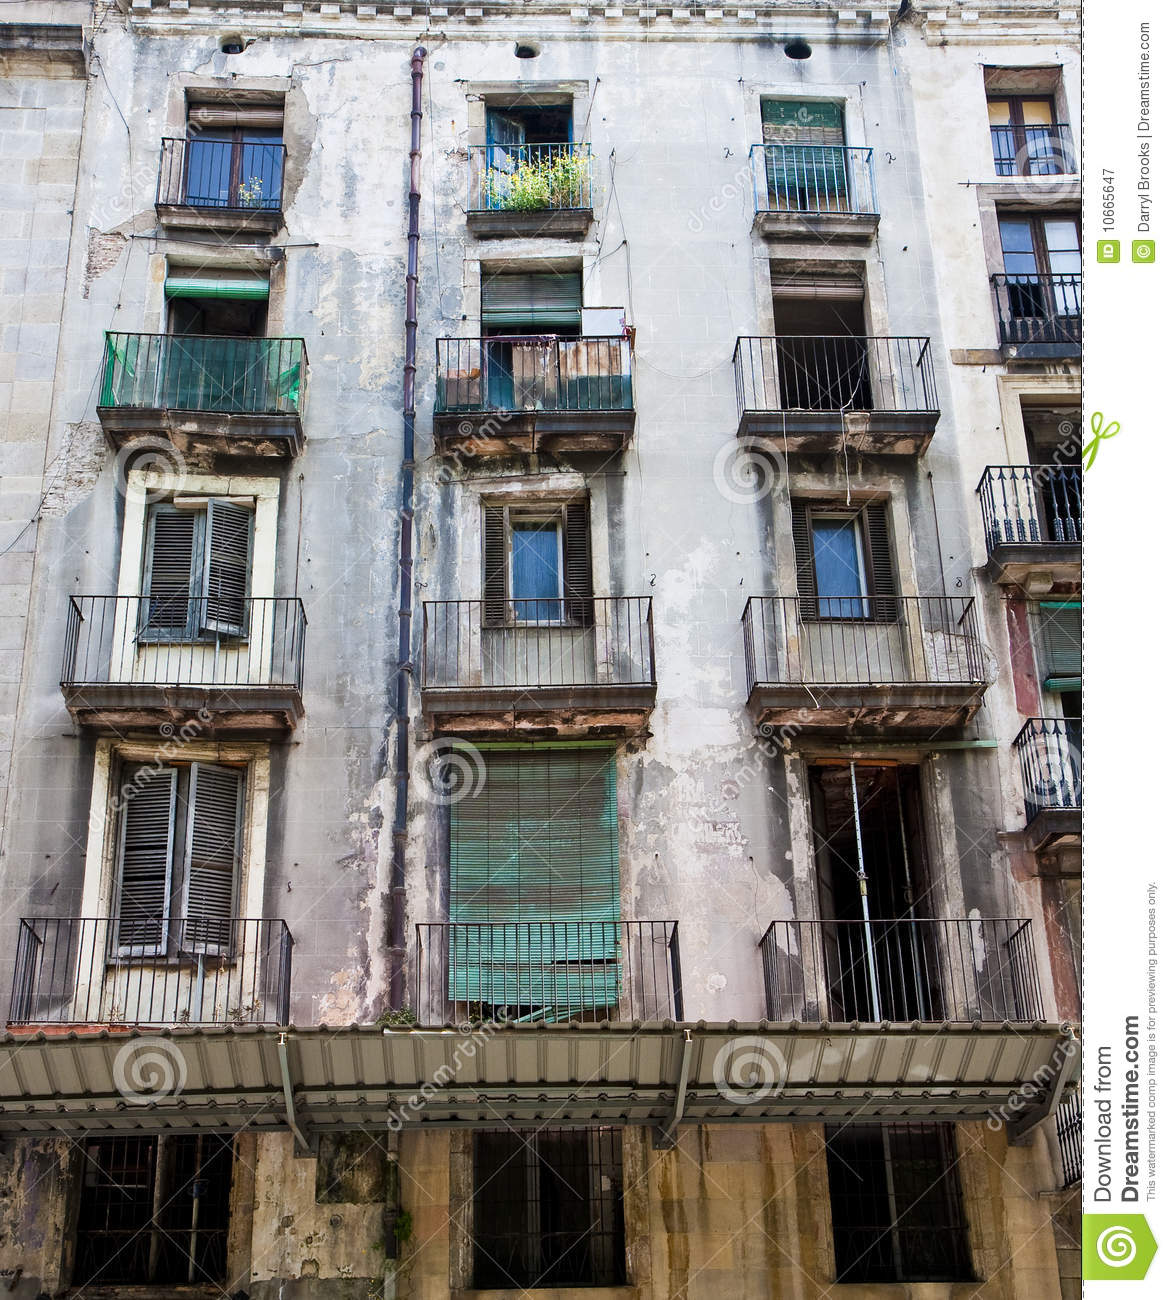 Old Apartment Building: Old Windows And Balconies Stock Image. Image Of Broken